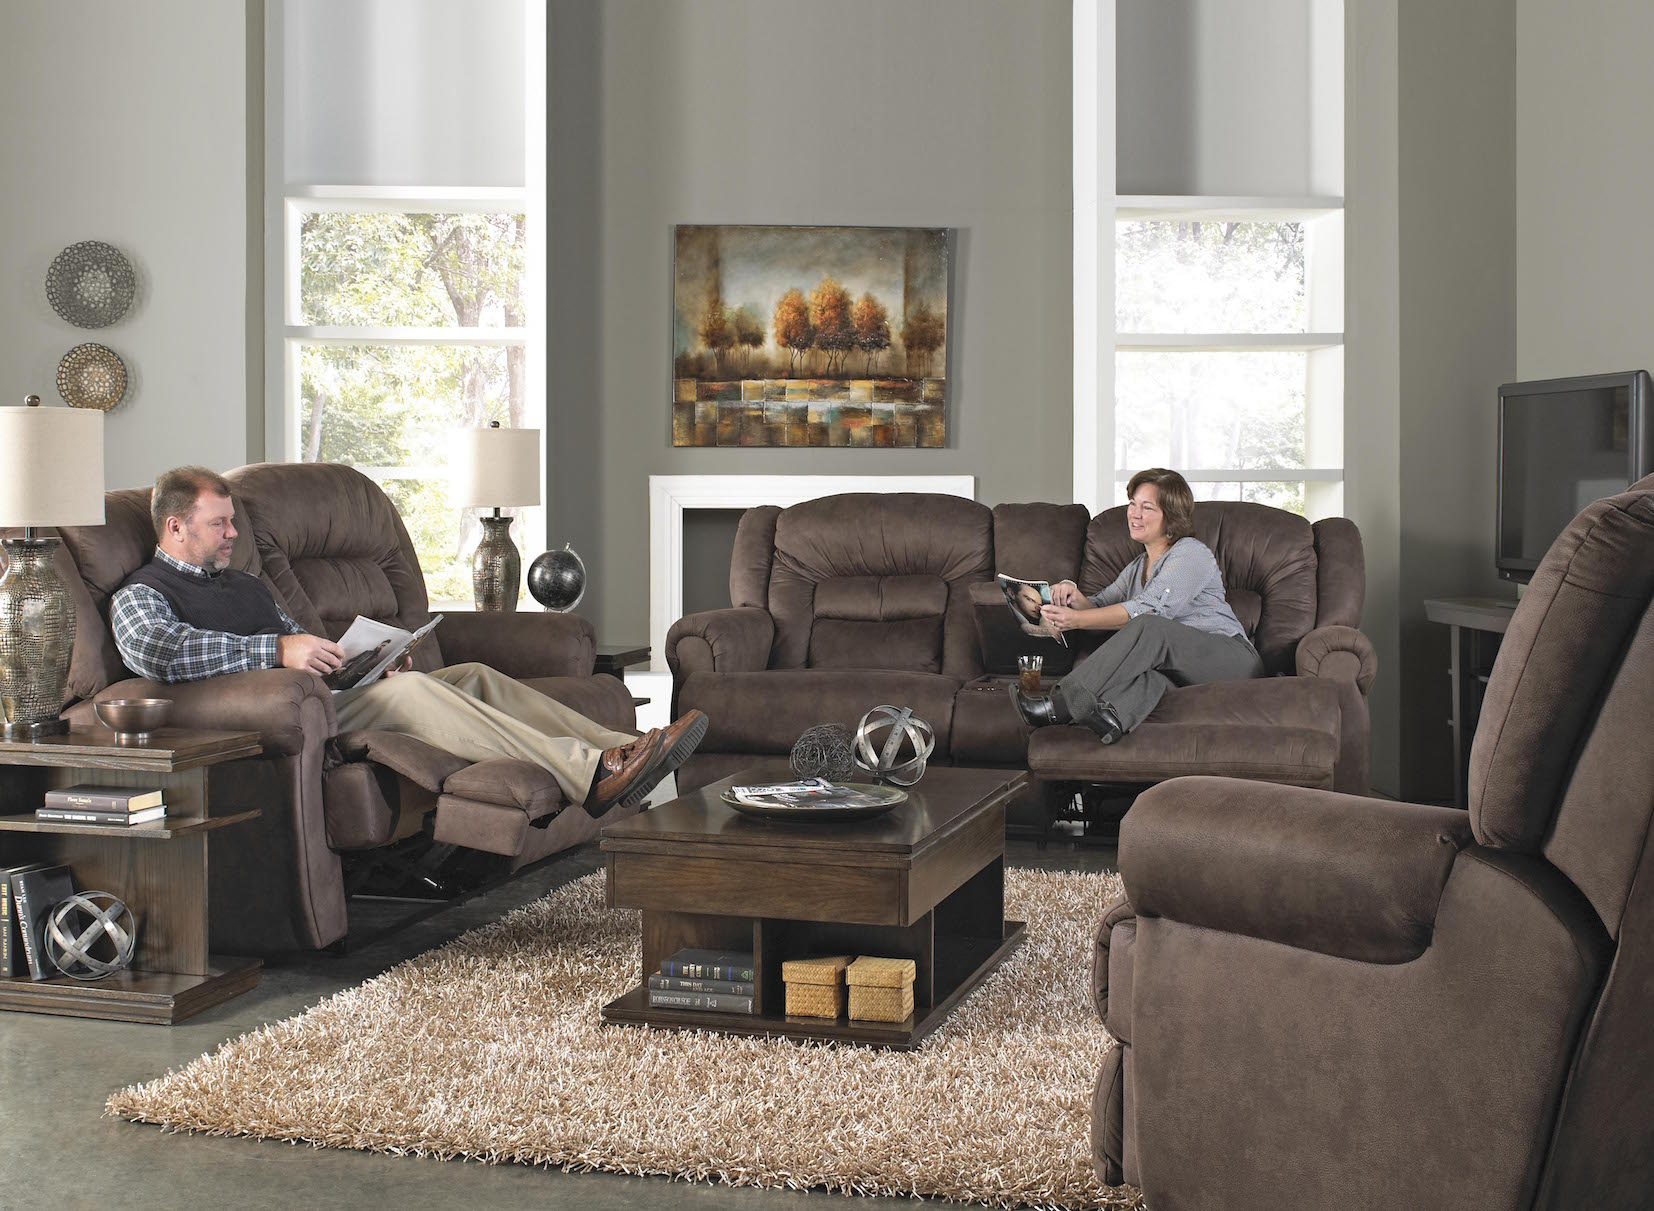 Wondrous Atlas 156 Extra Tall Big Mans Sofas And Sectionals Machost Co Dining Chair Design Ideas Machostcouk